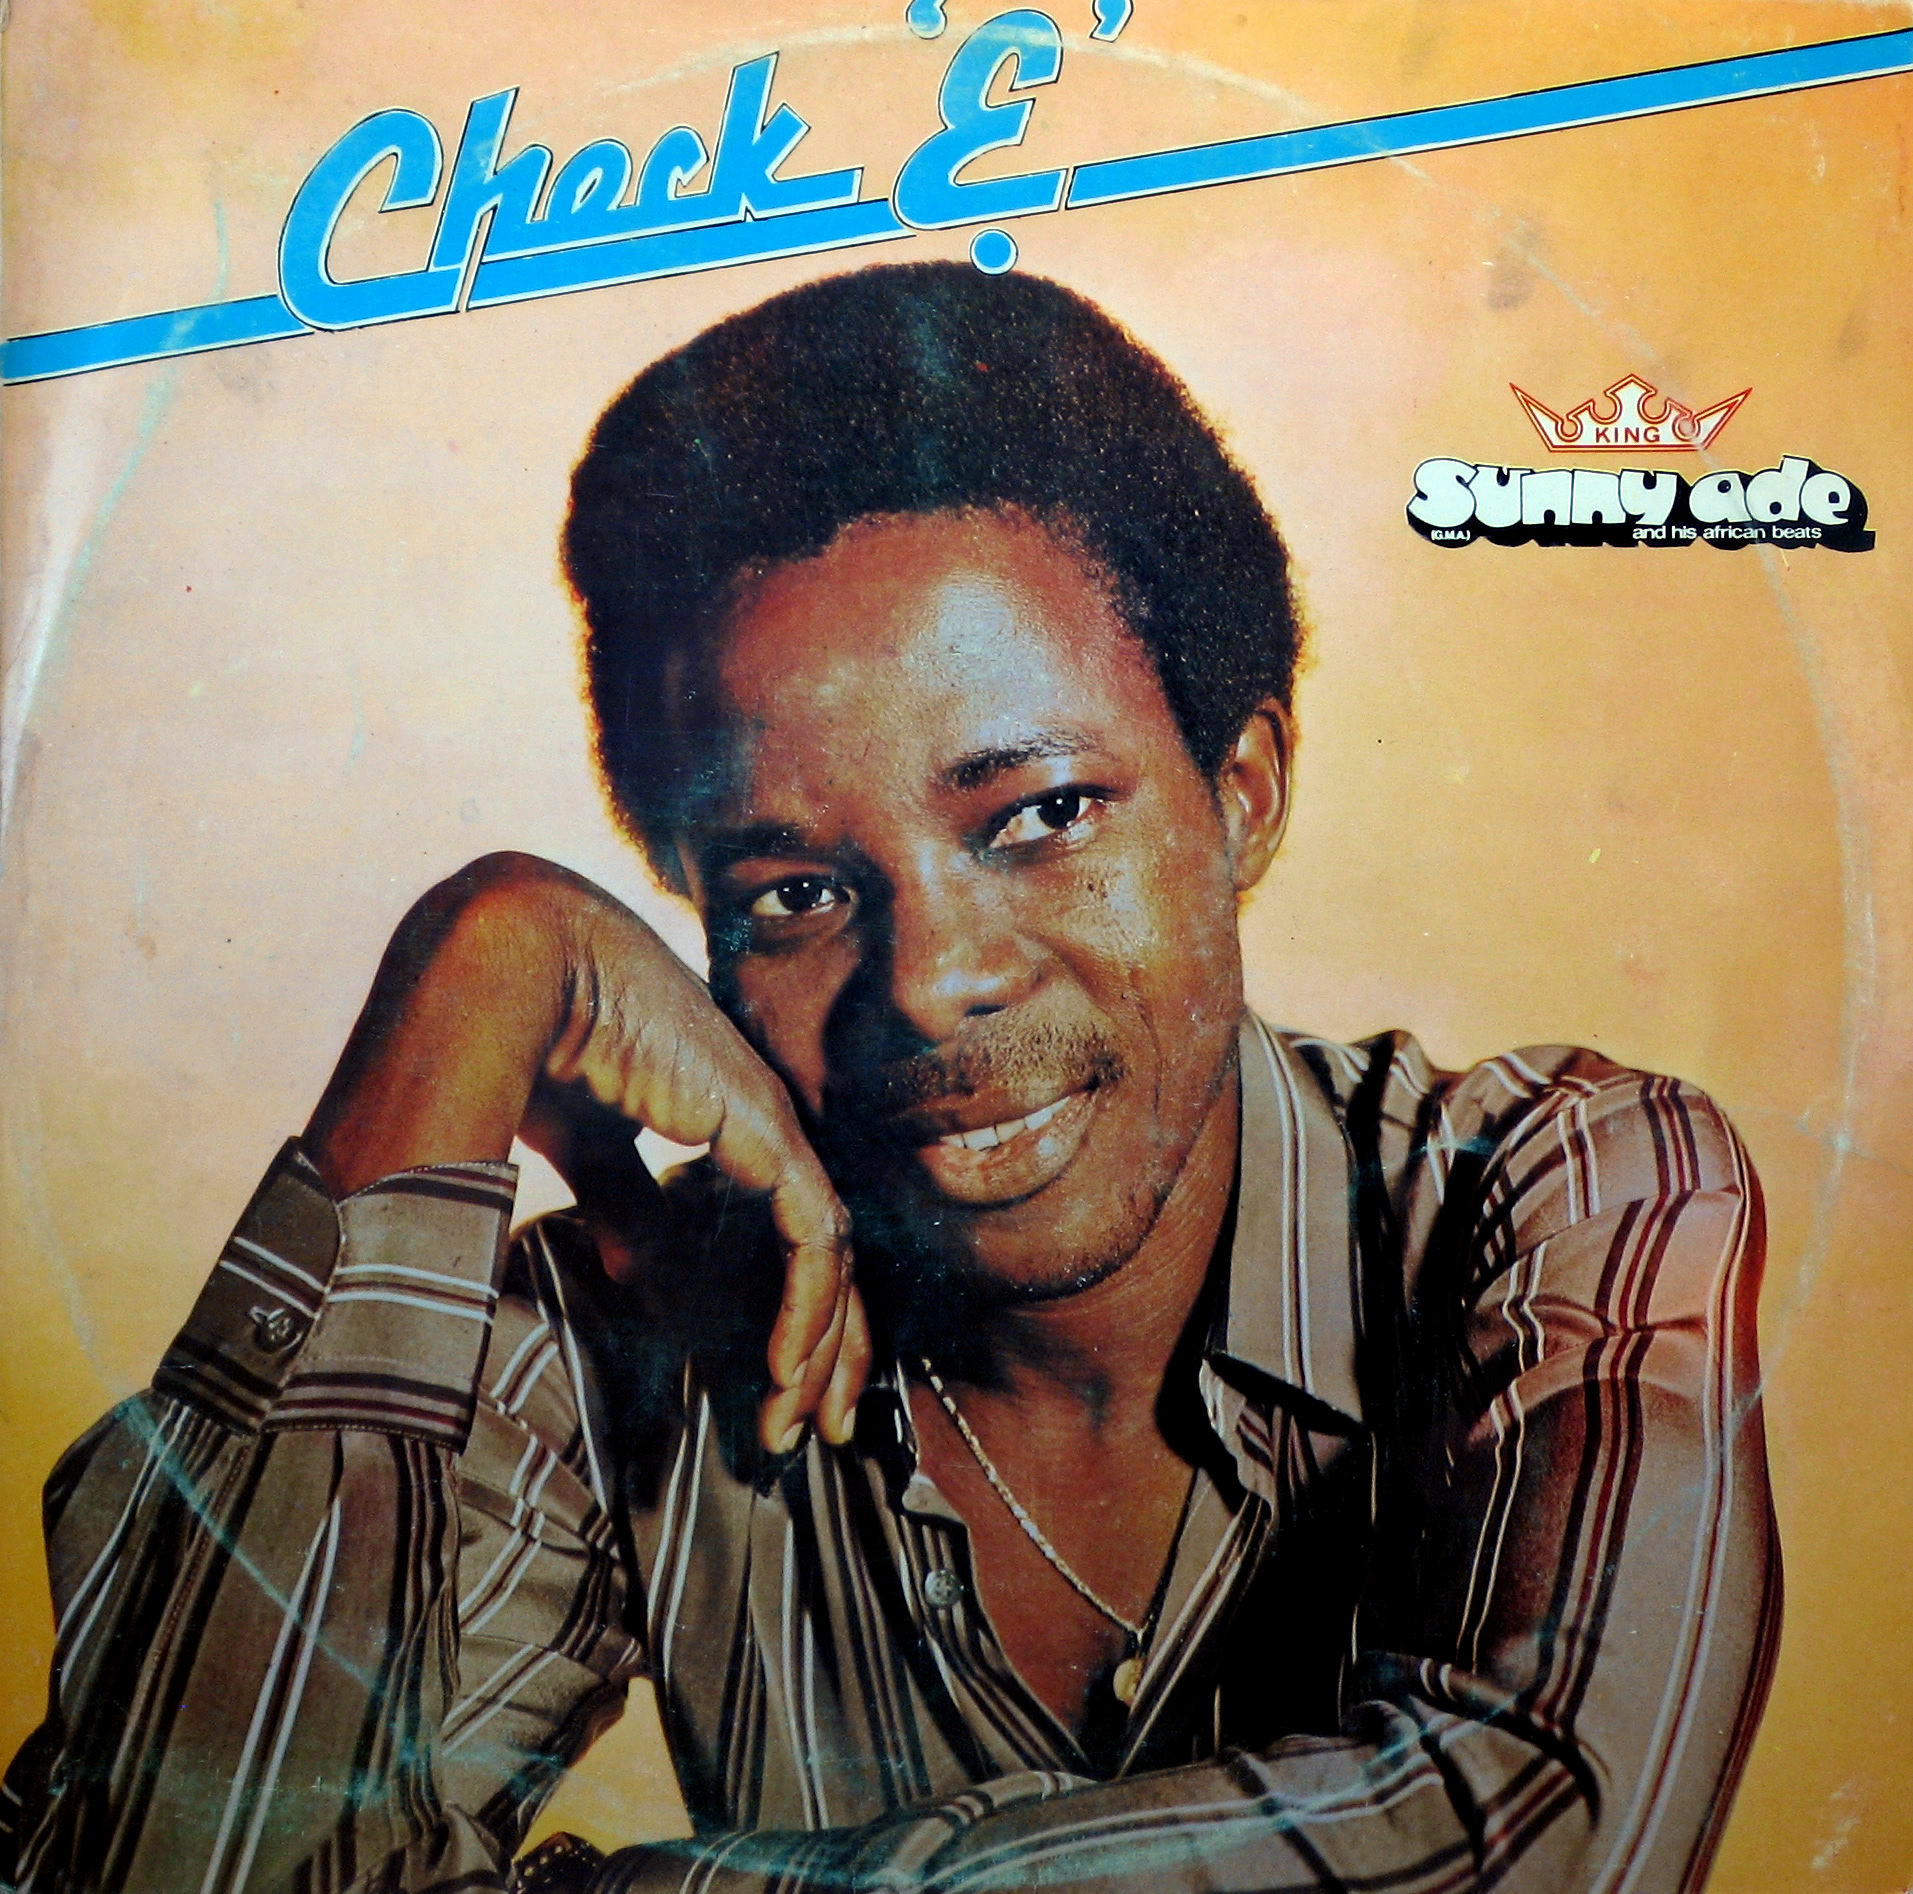 King Sunny Ade and his African Beats – Check 'E', Sunny